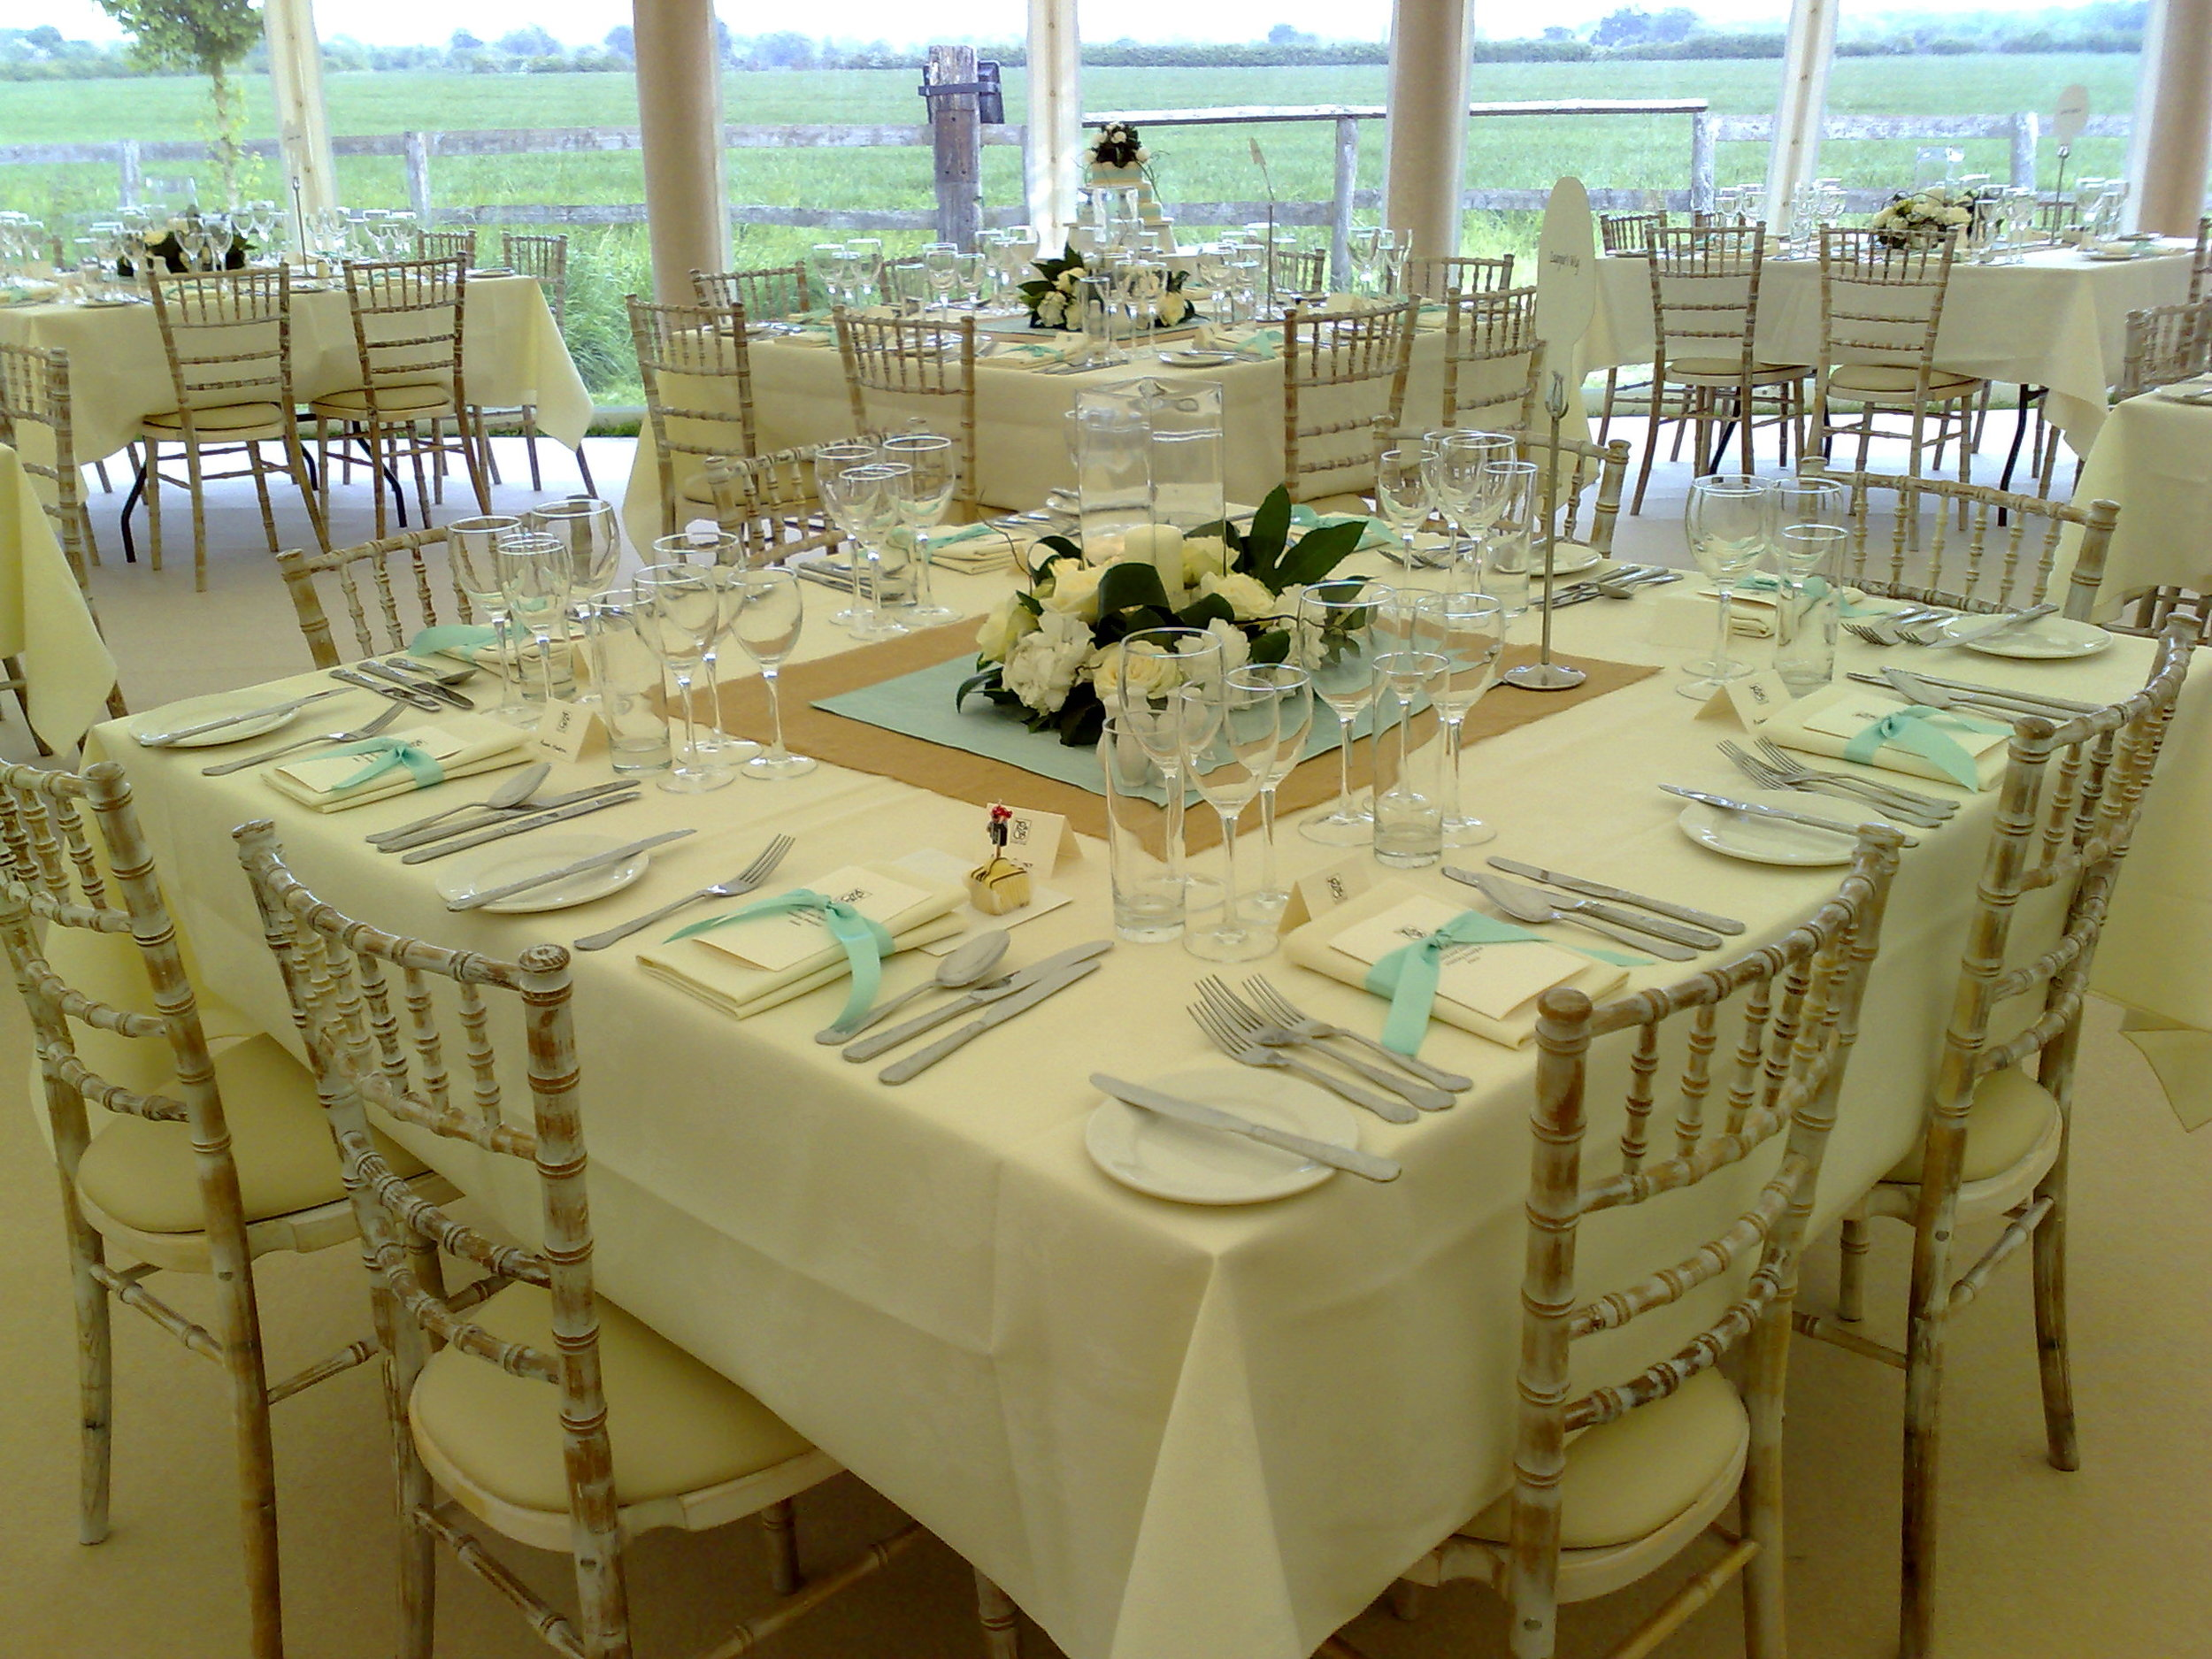 With a wide range of furniture there are so many options for your wedding breakfast